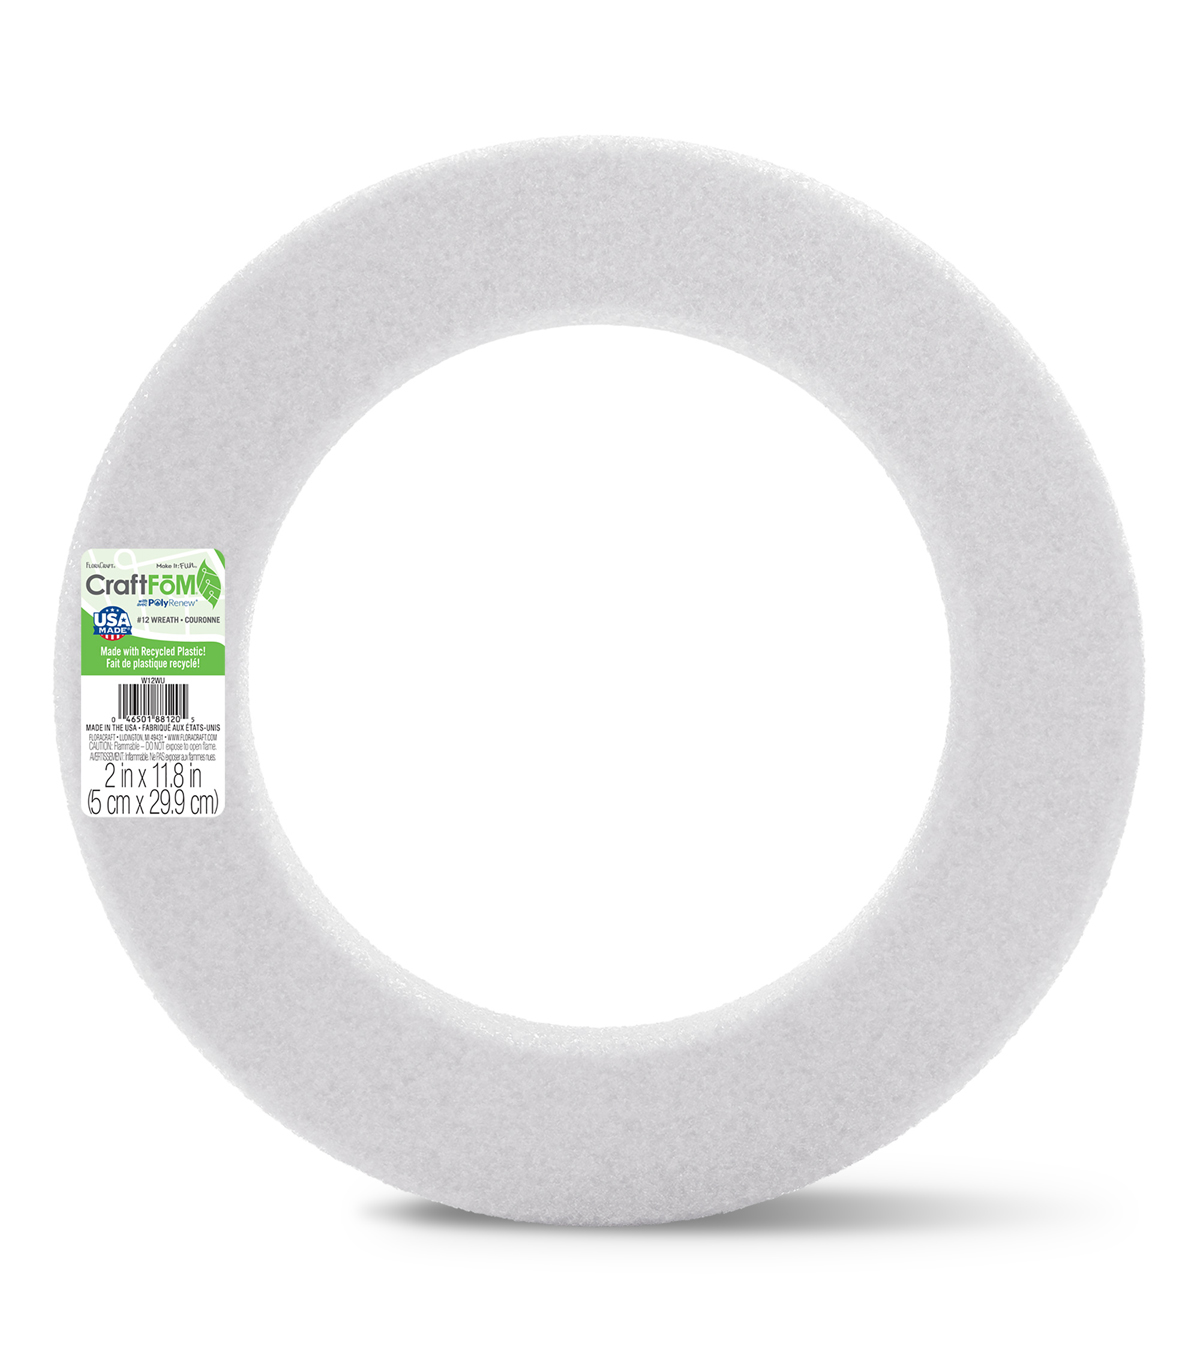 Floracraft Styrofoam Wreath 12\u0022X1-1/4\u0022 1Pk-White